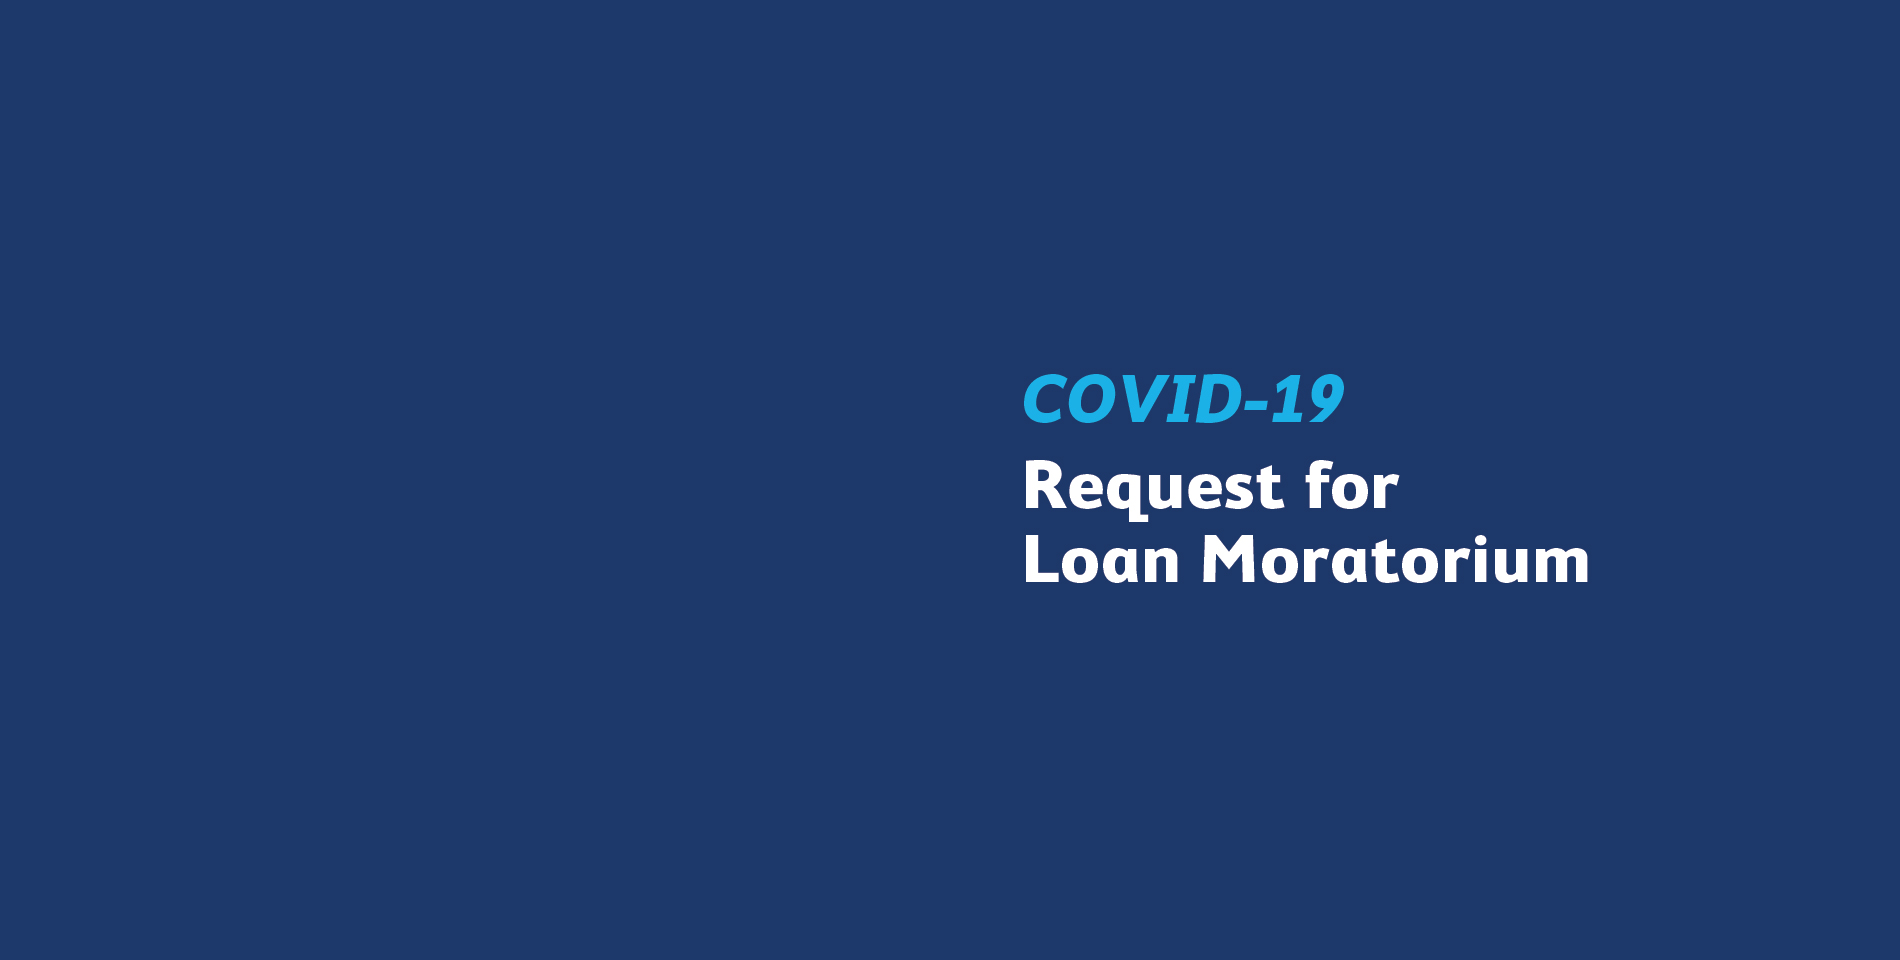 COVID-19 Request for Loan Moratorium SBM Bank